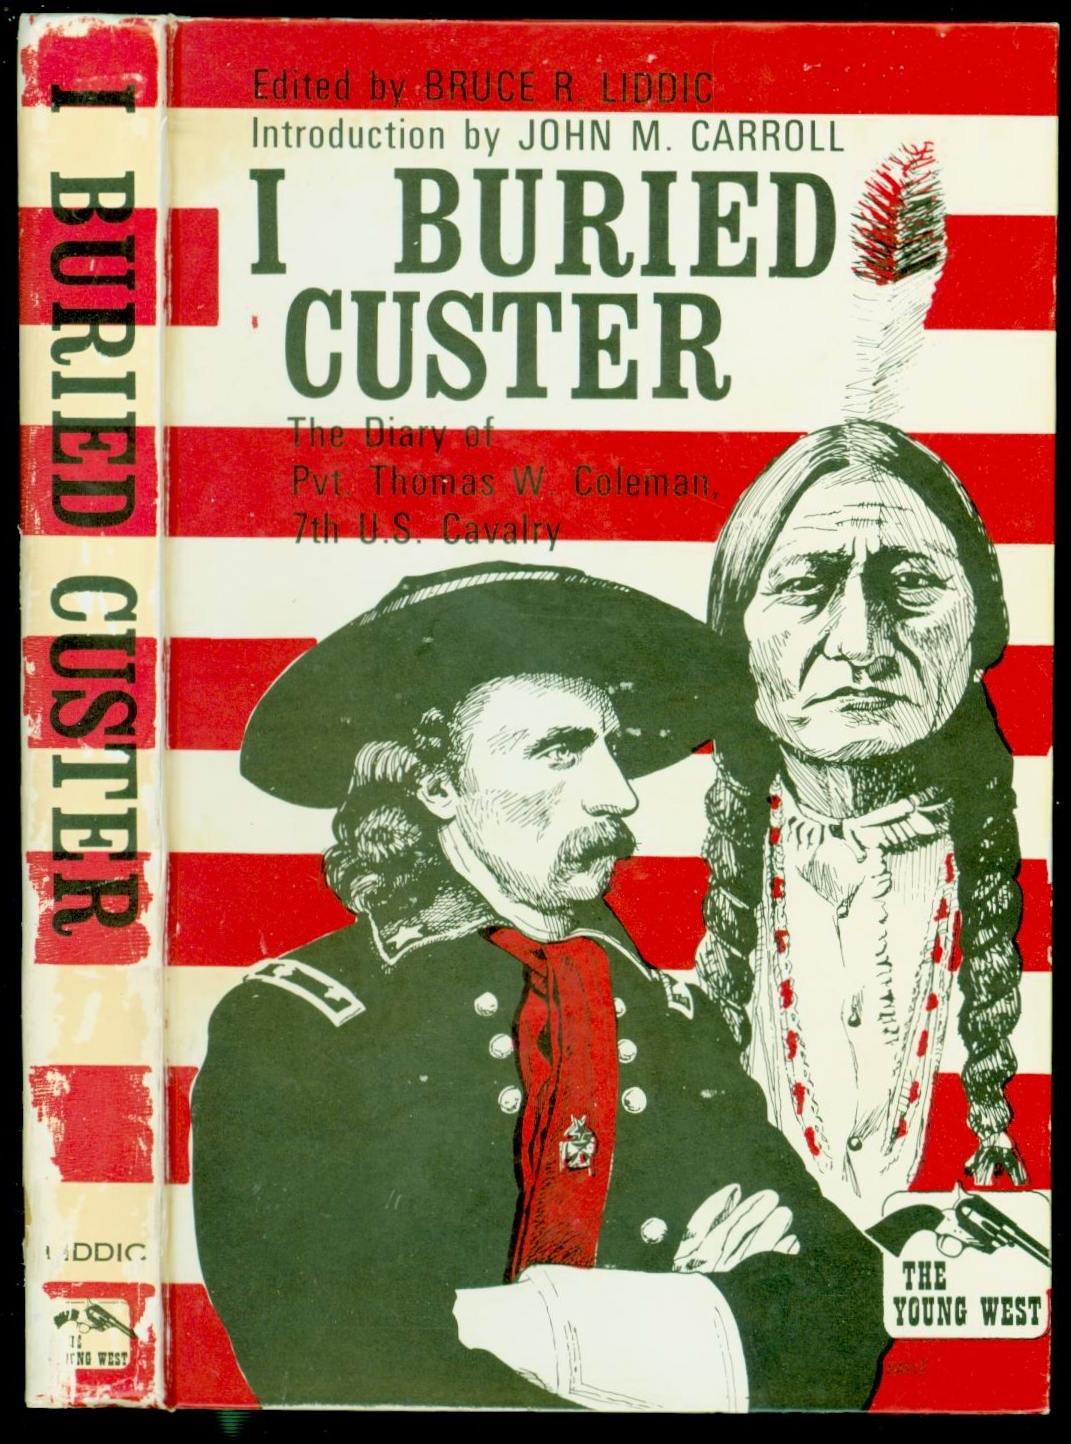 Image for I buried Custer: The diary of Pvt. Thomas W. Coleman, 7th U.S. Cavalry (The Young West series) FIRST EDITION